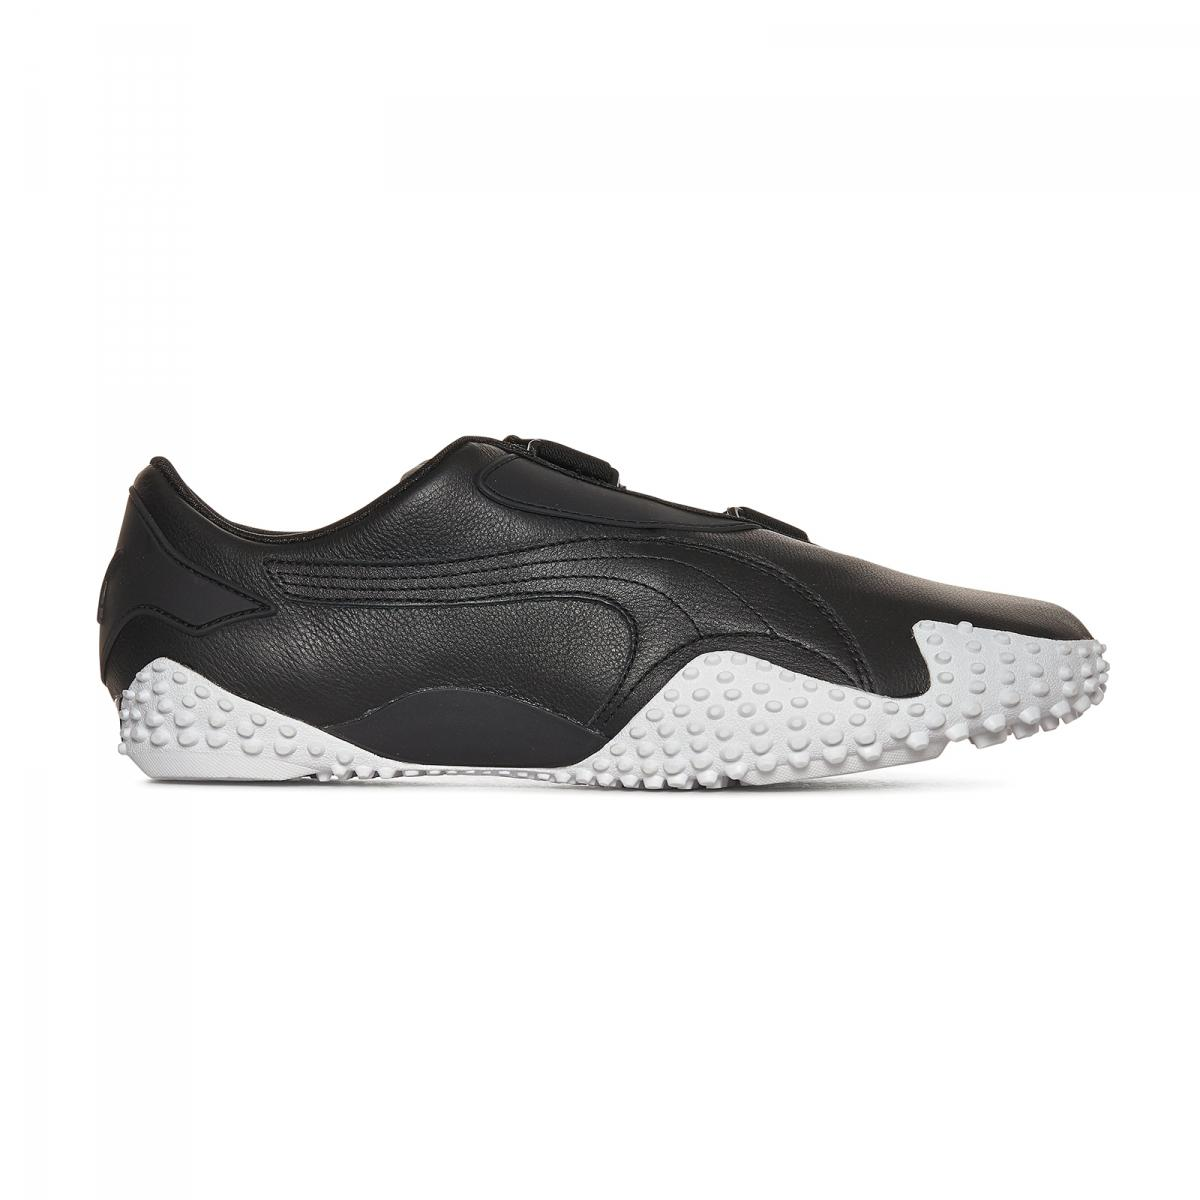 PUMA Leather Mostro Og Sneakers in Black for Men - Lyst